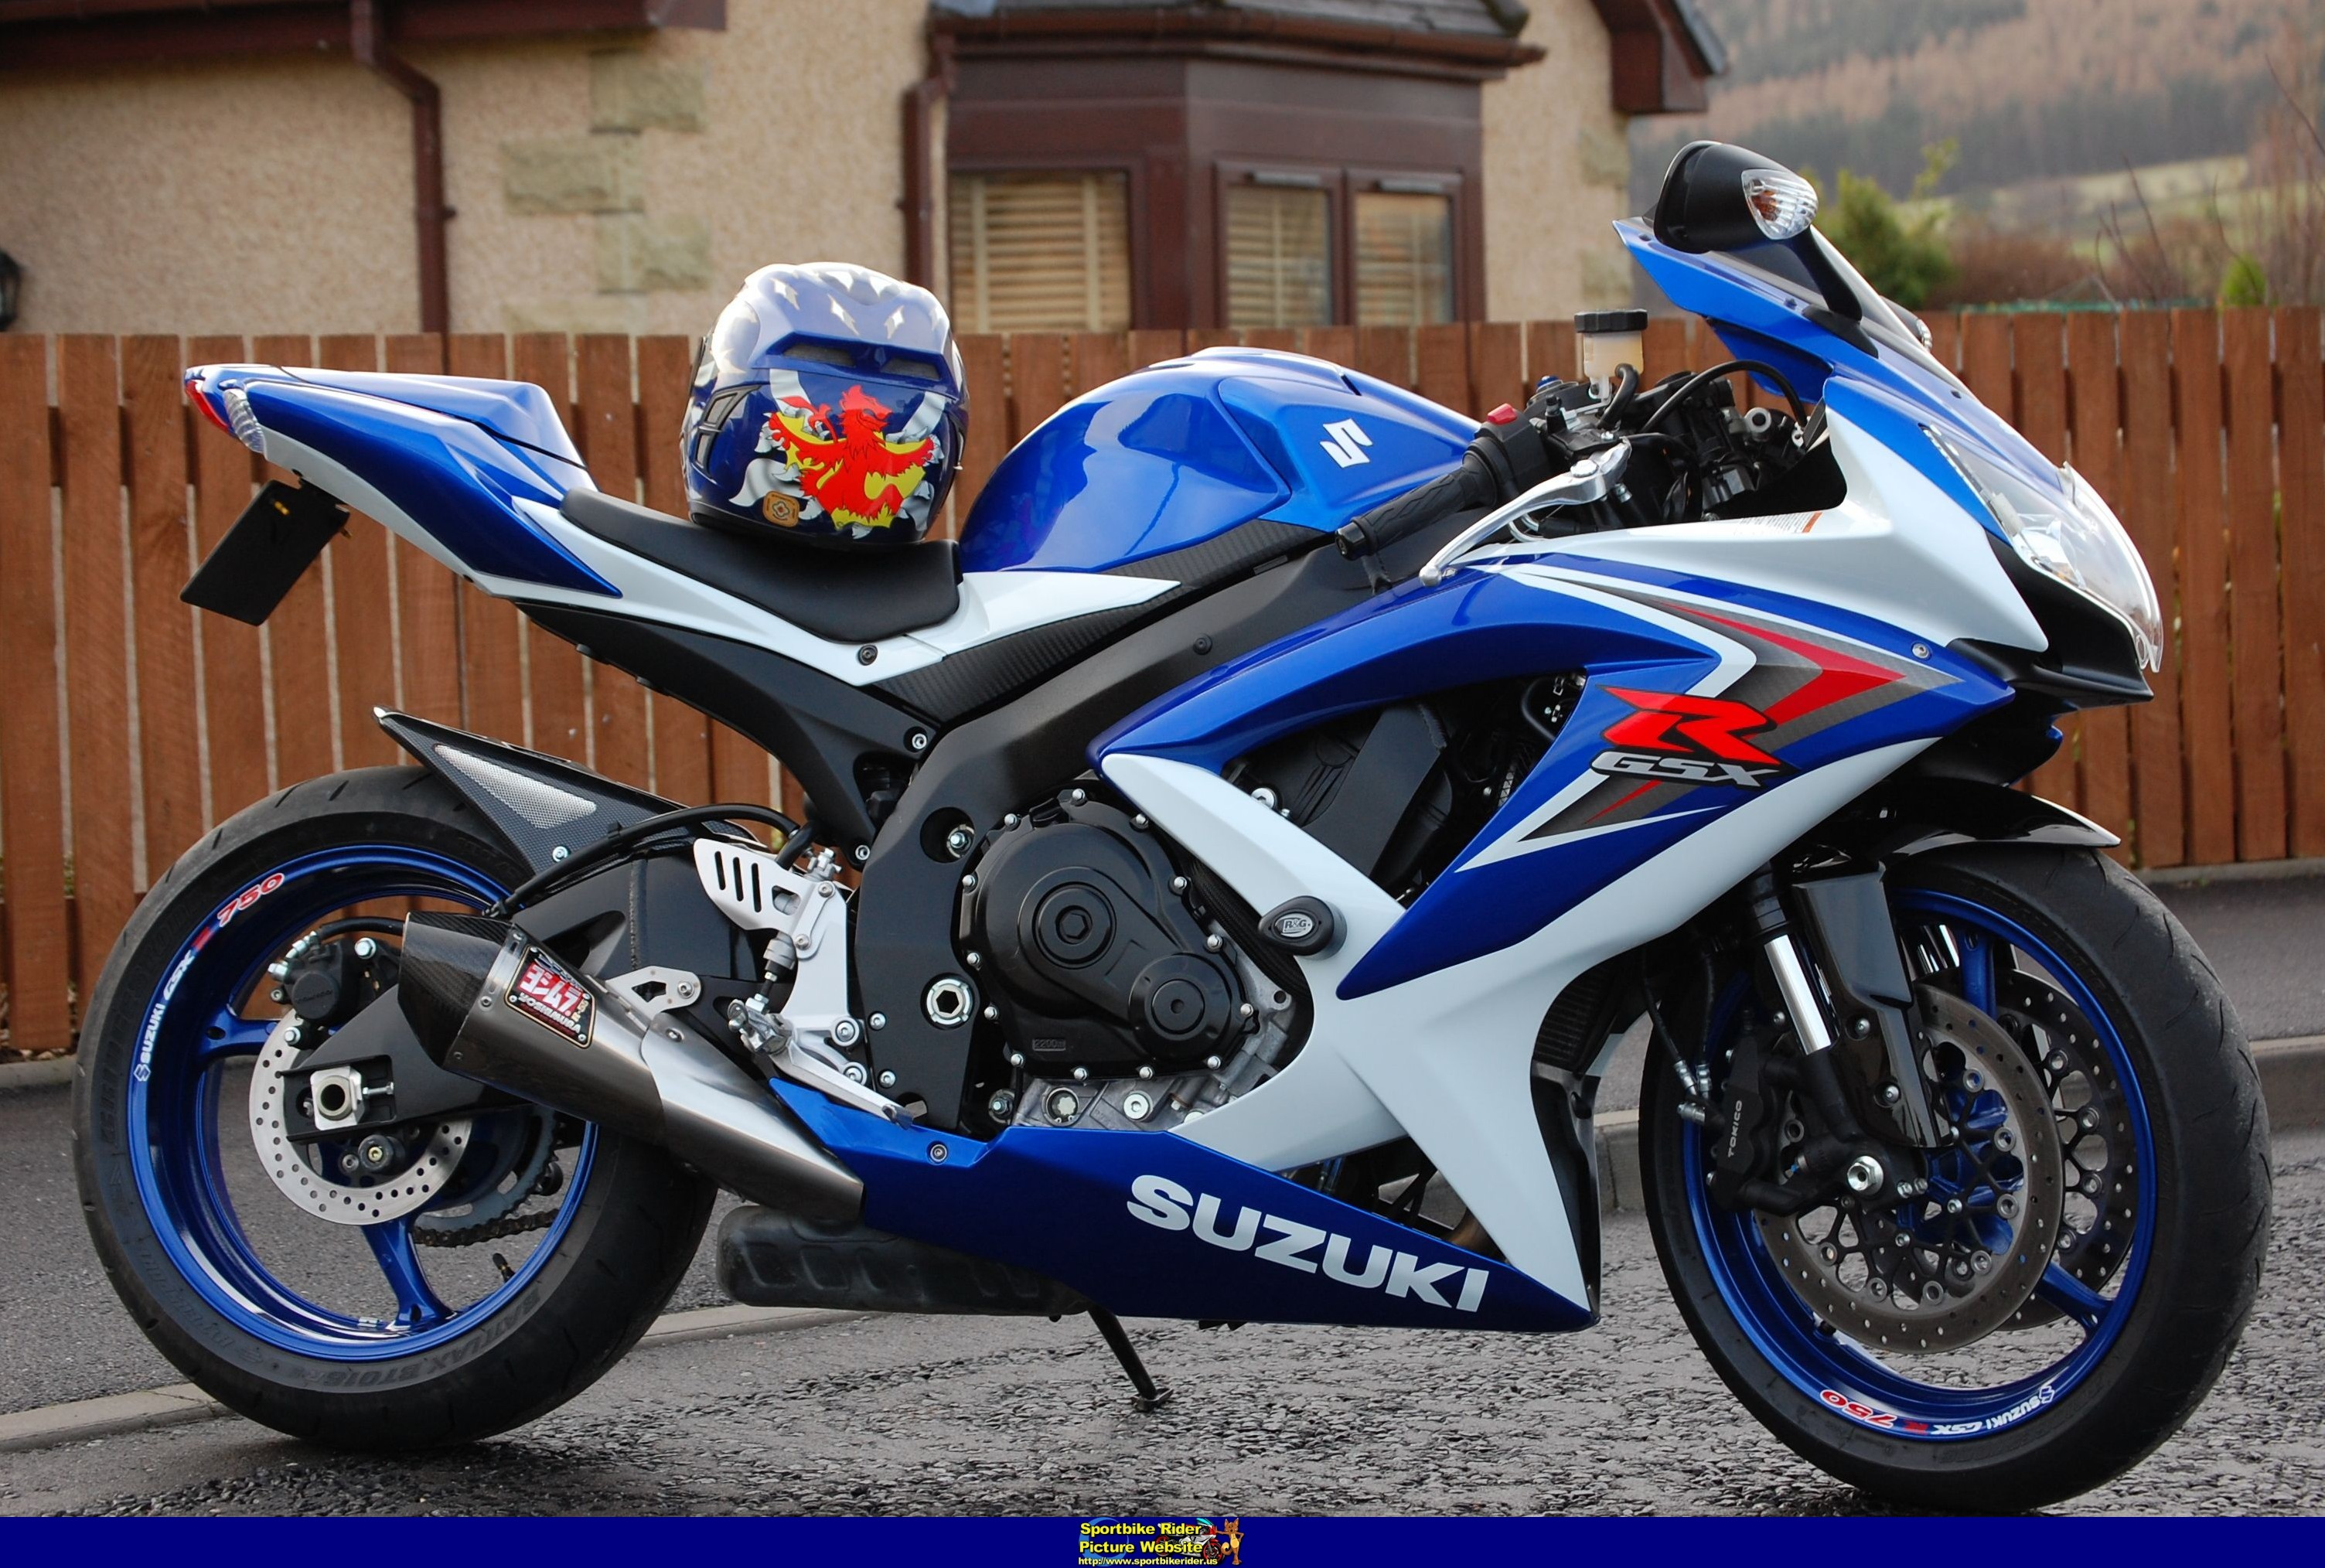 Tremendous 2008 Suzuki Gsx R 750 Pics Specs And Information Bralicious Painted Fabric Chair Ideas Braliciousco